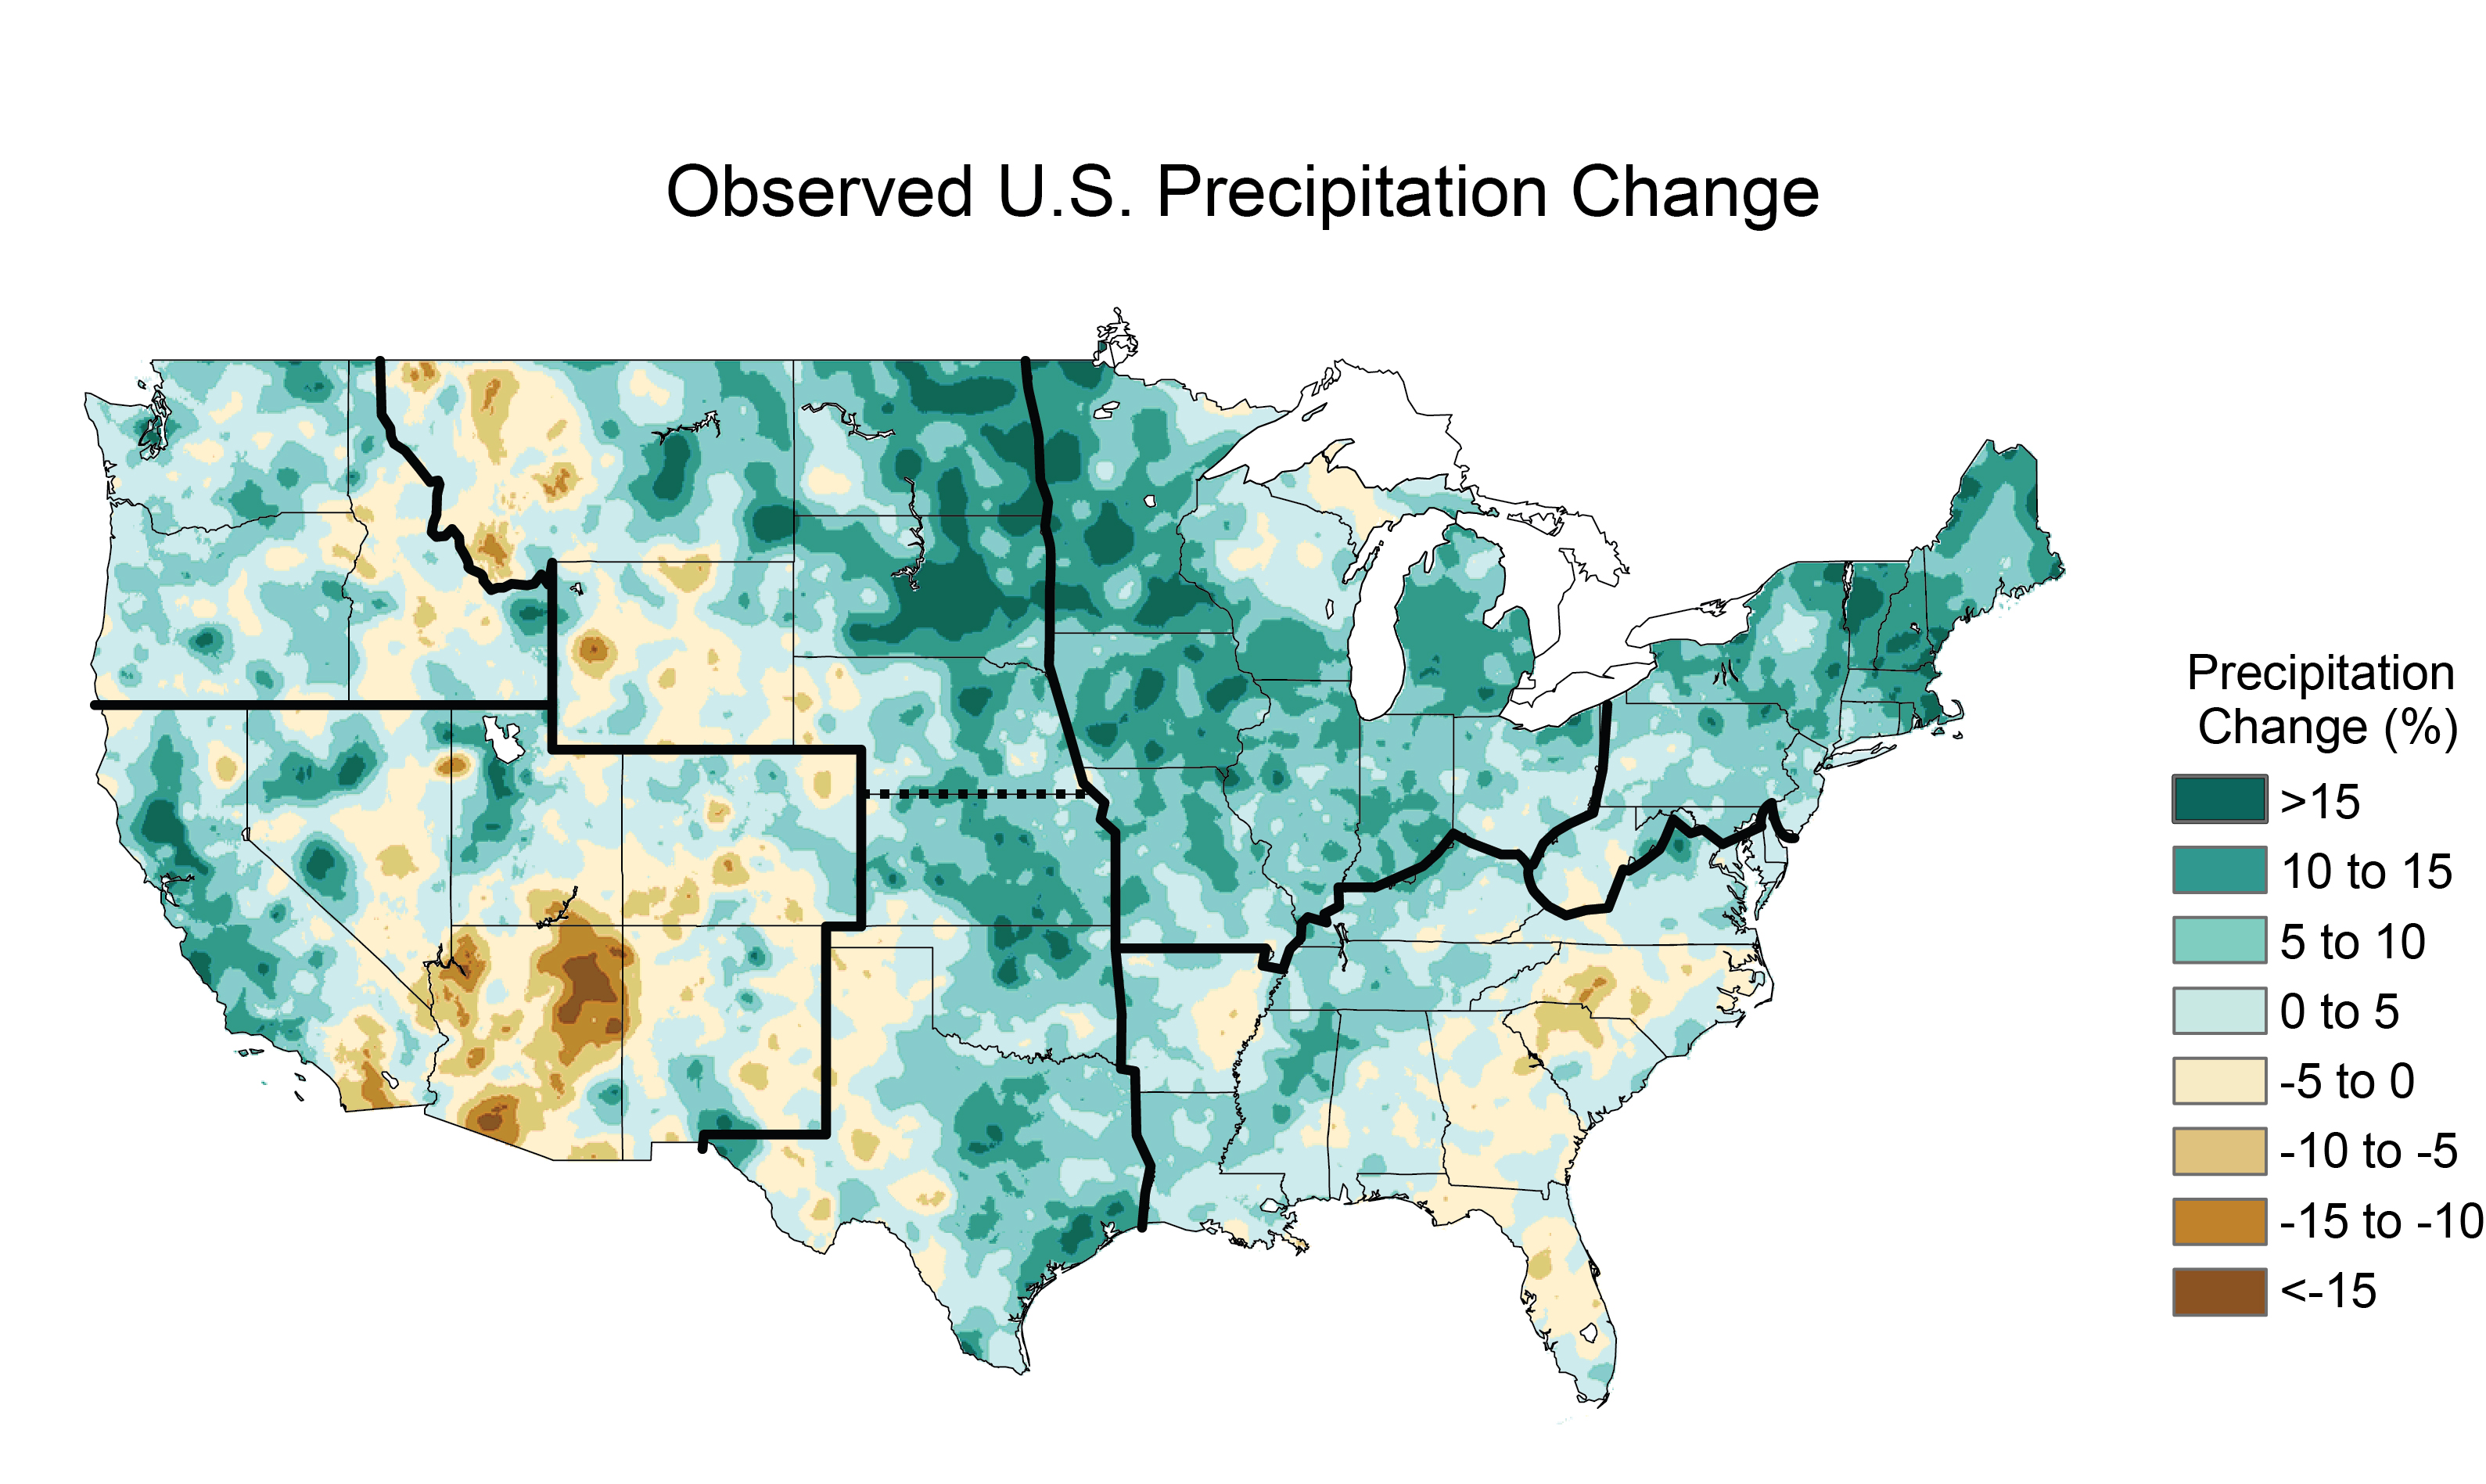 Climate Changes In The United States Image Of The Day - Precipitation map of us